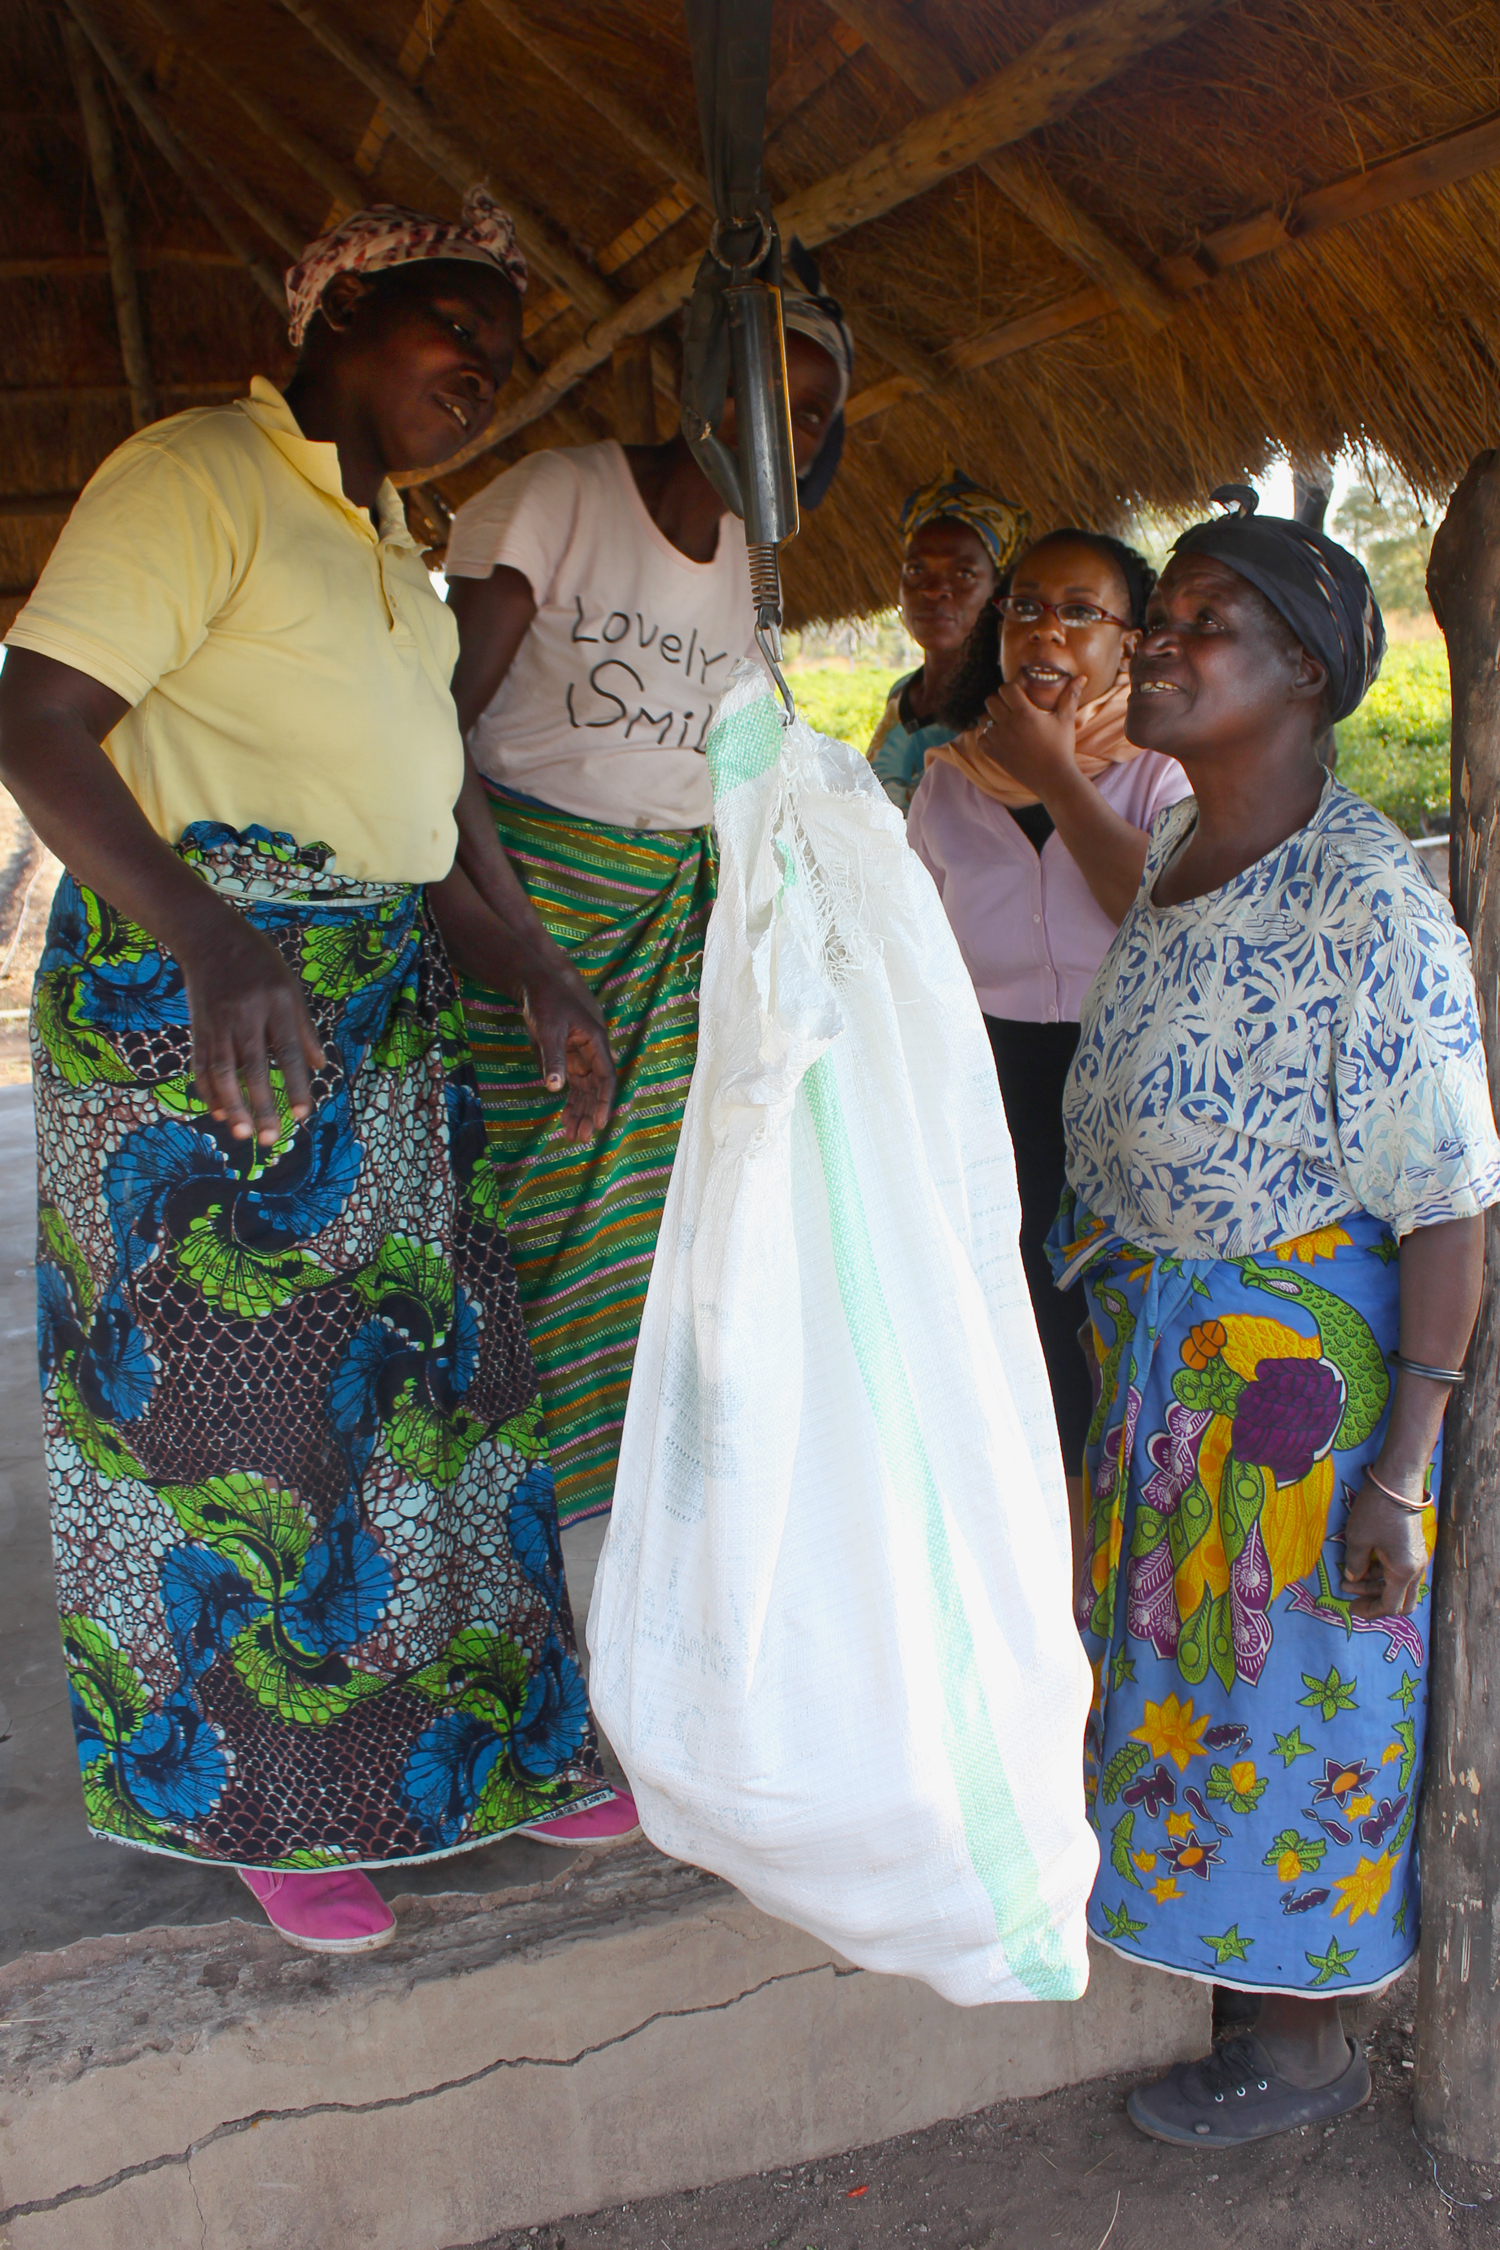 Women farmers and a buyer gather around a scale and bag of produce to discuss prices.